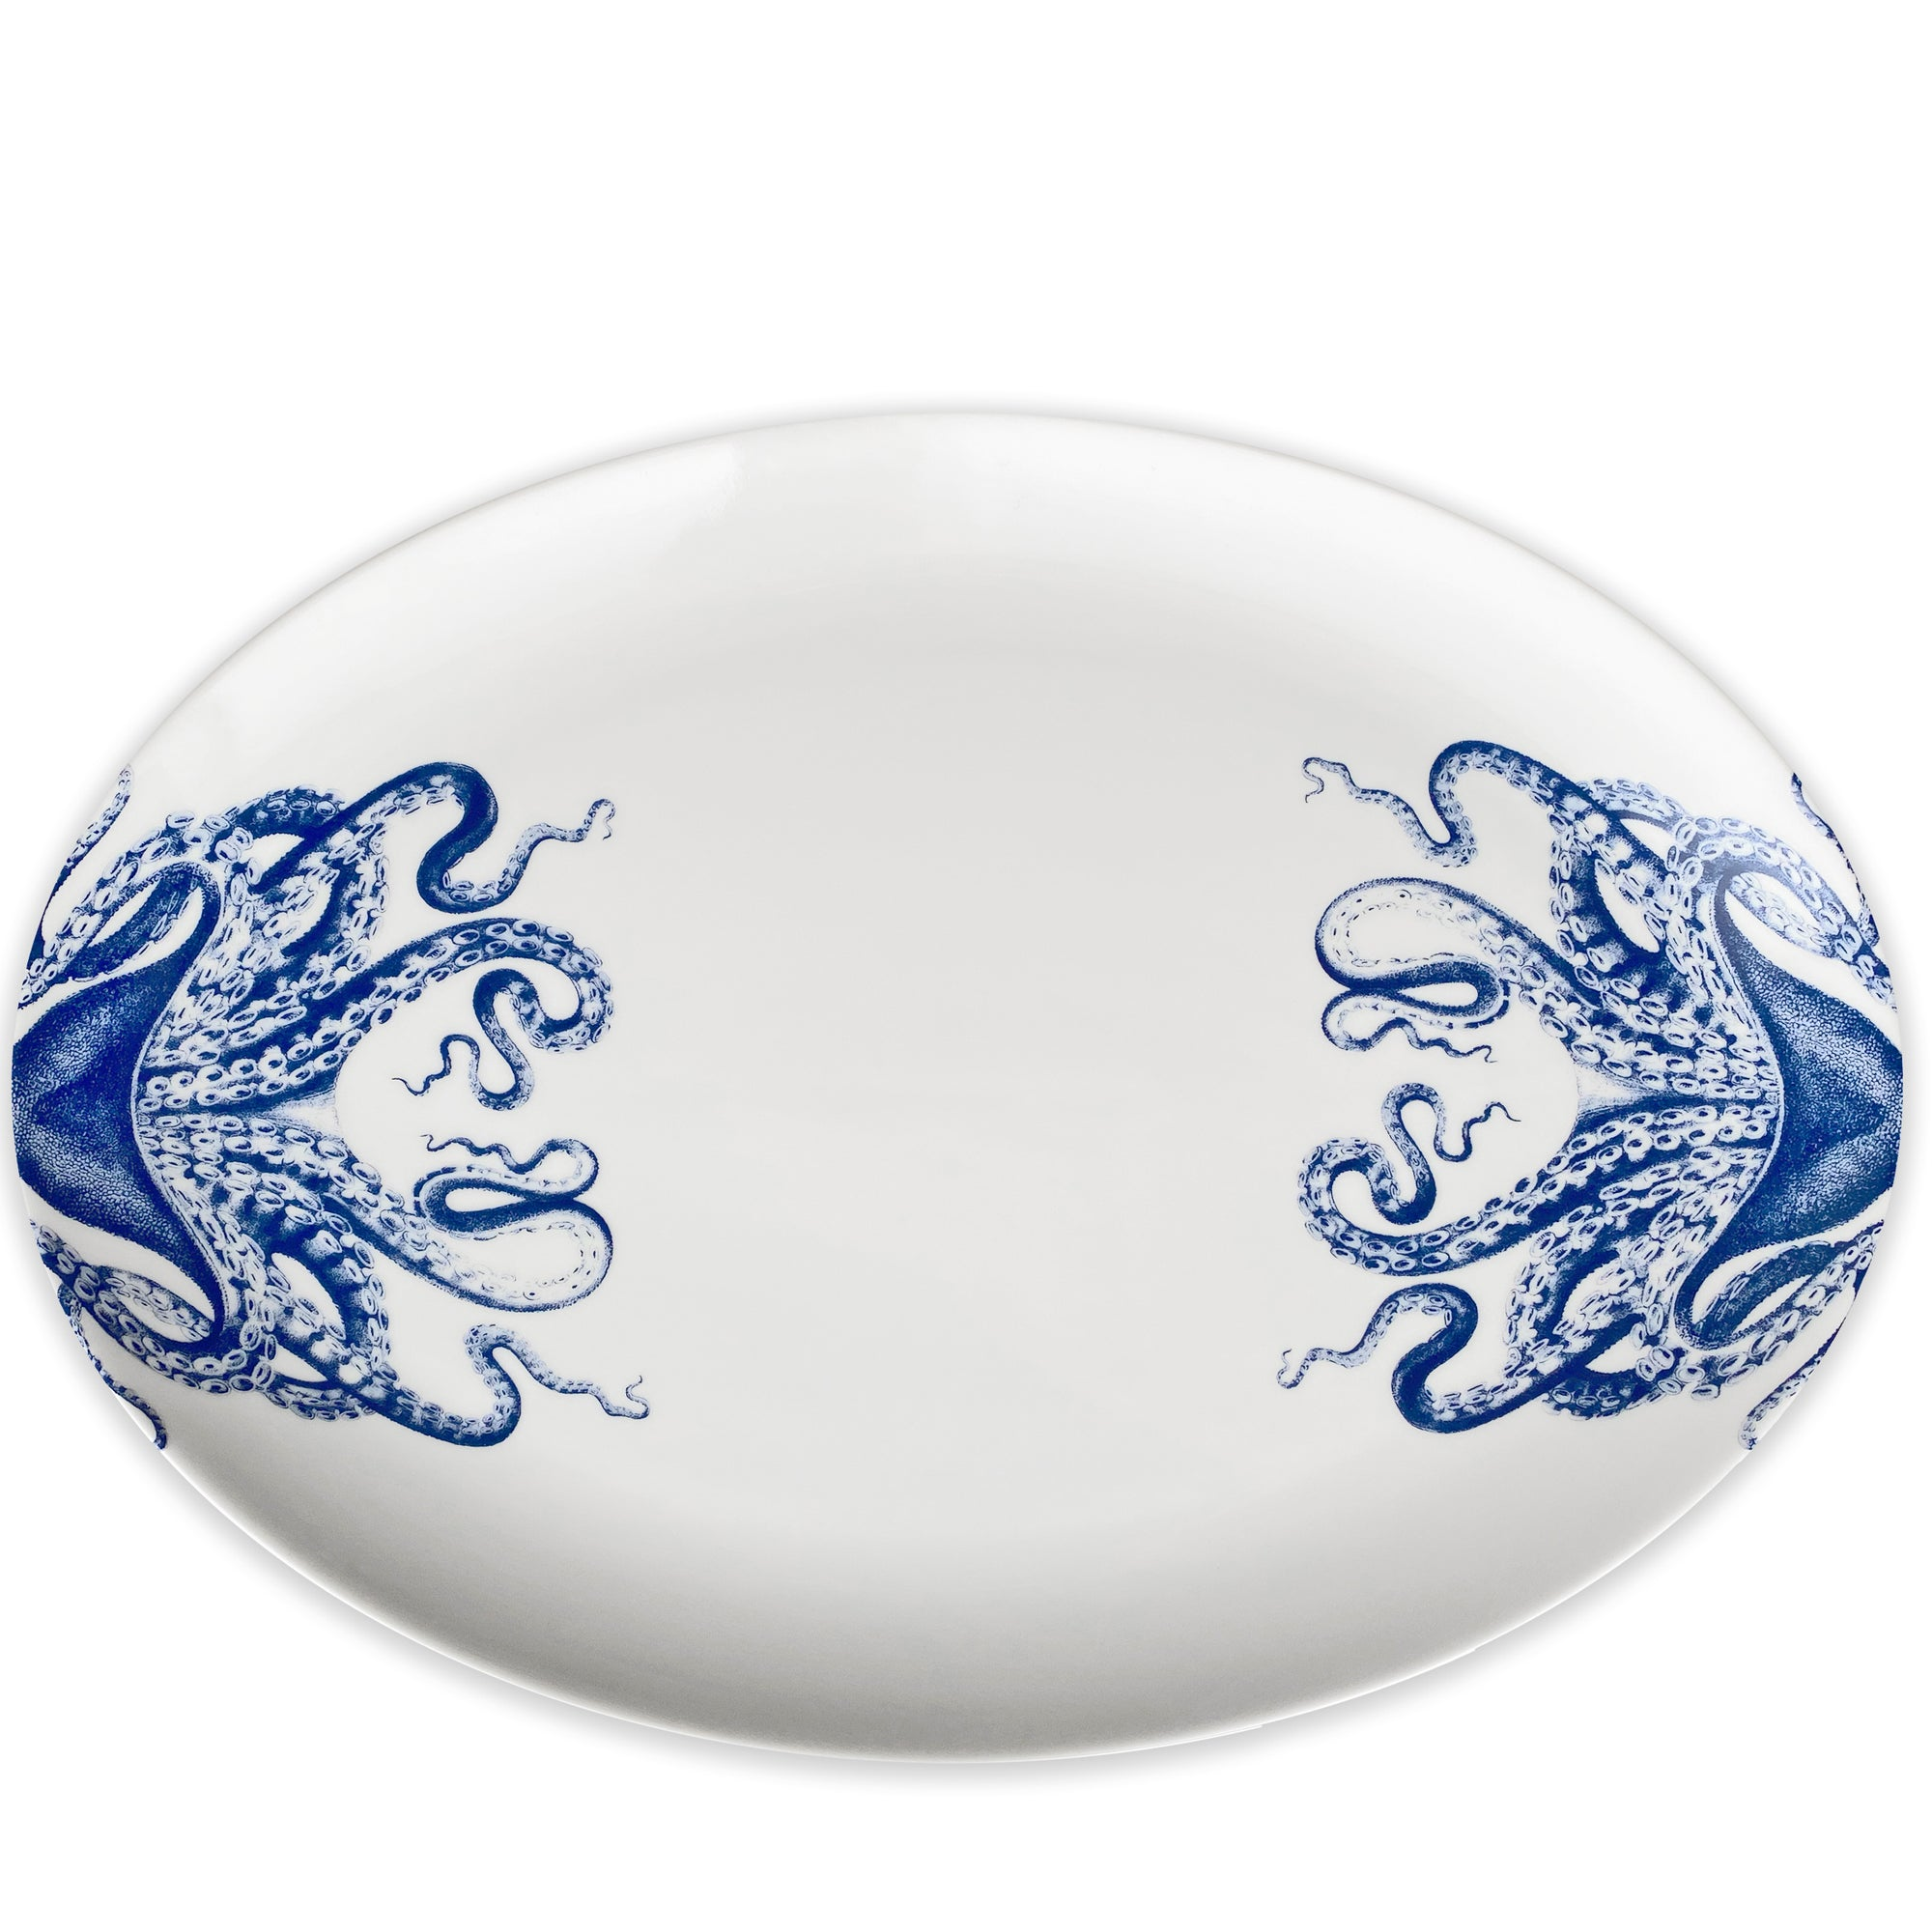 Blue Lucy 14 in COUPE Oval Platter - Caskata